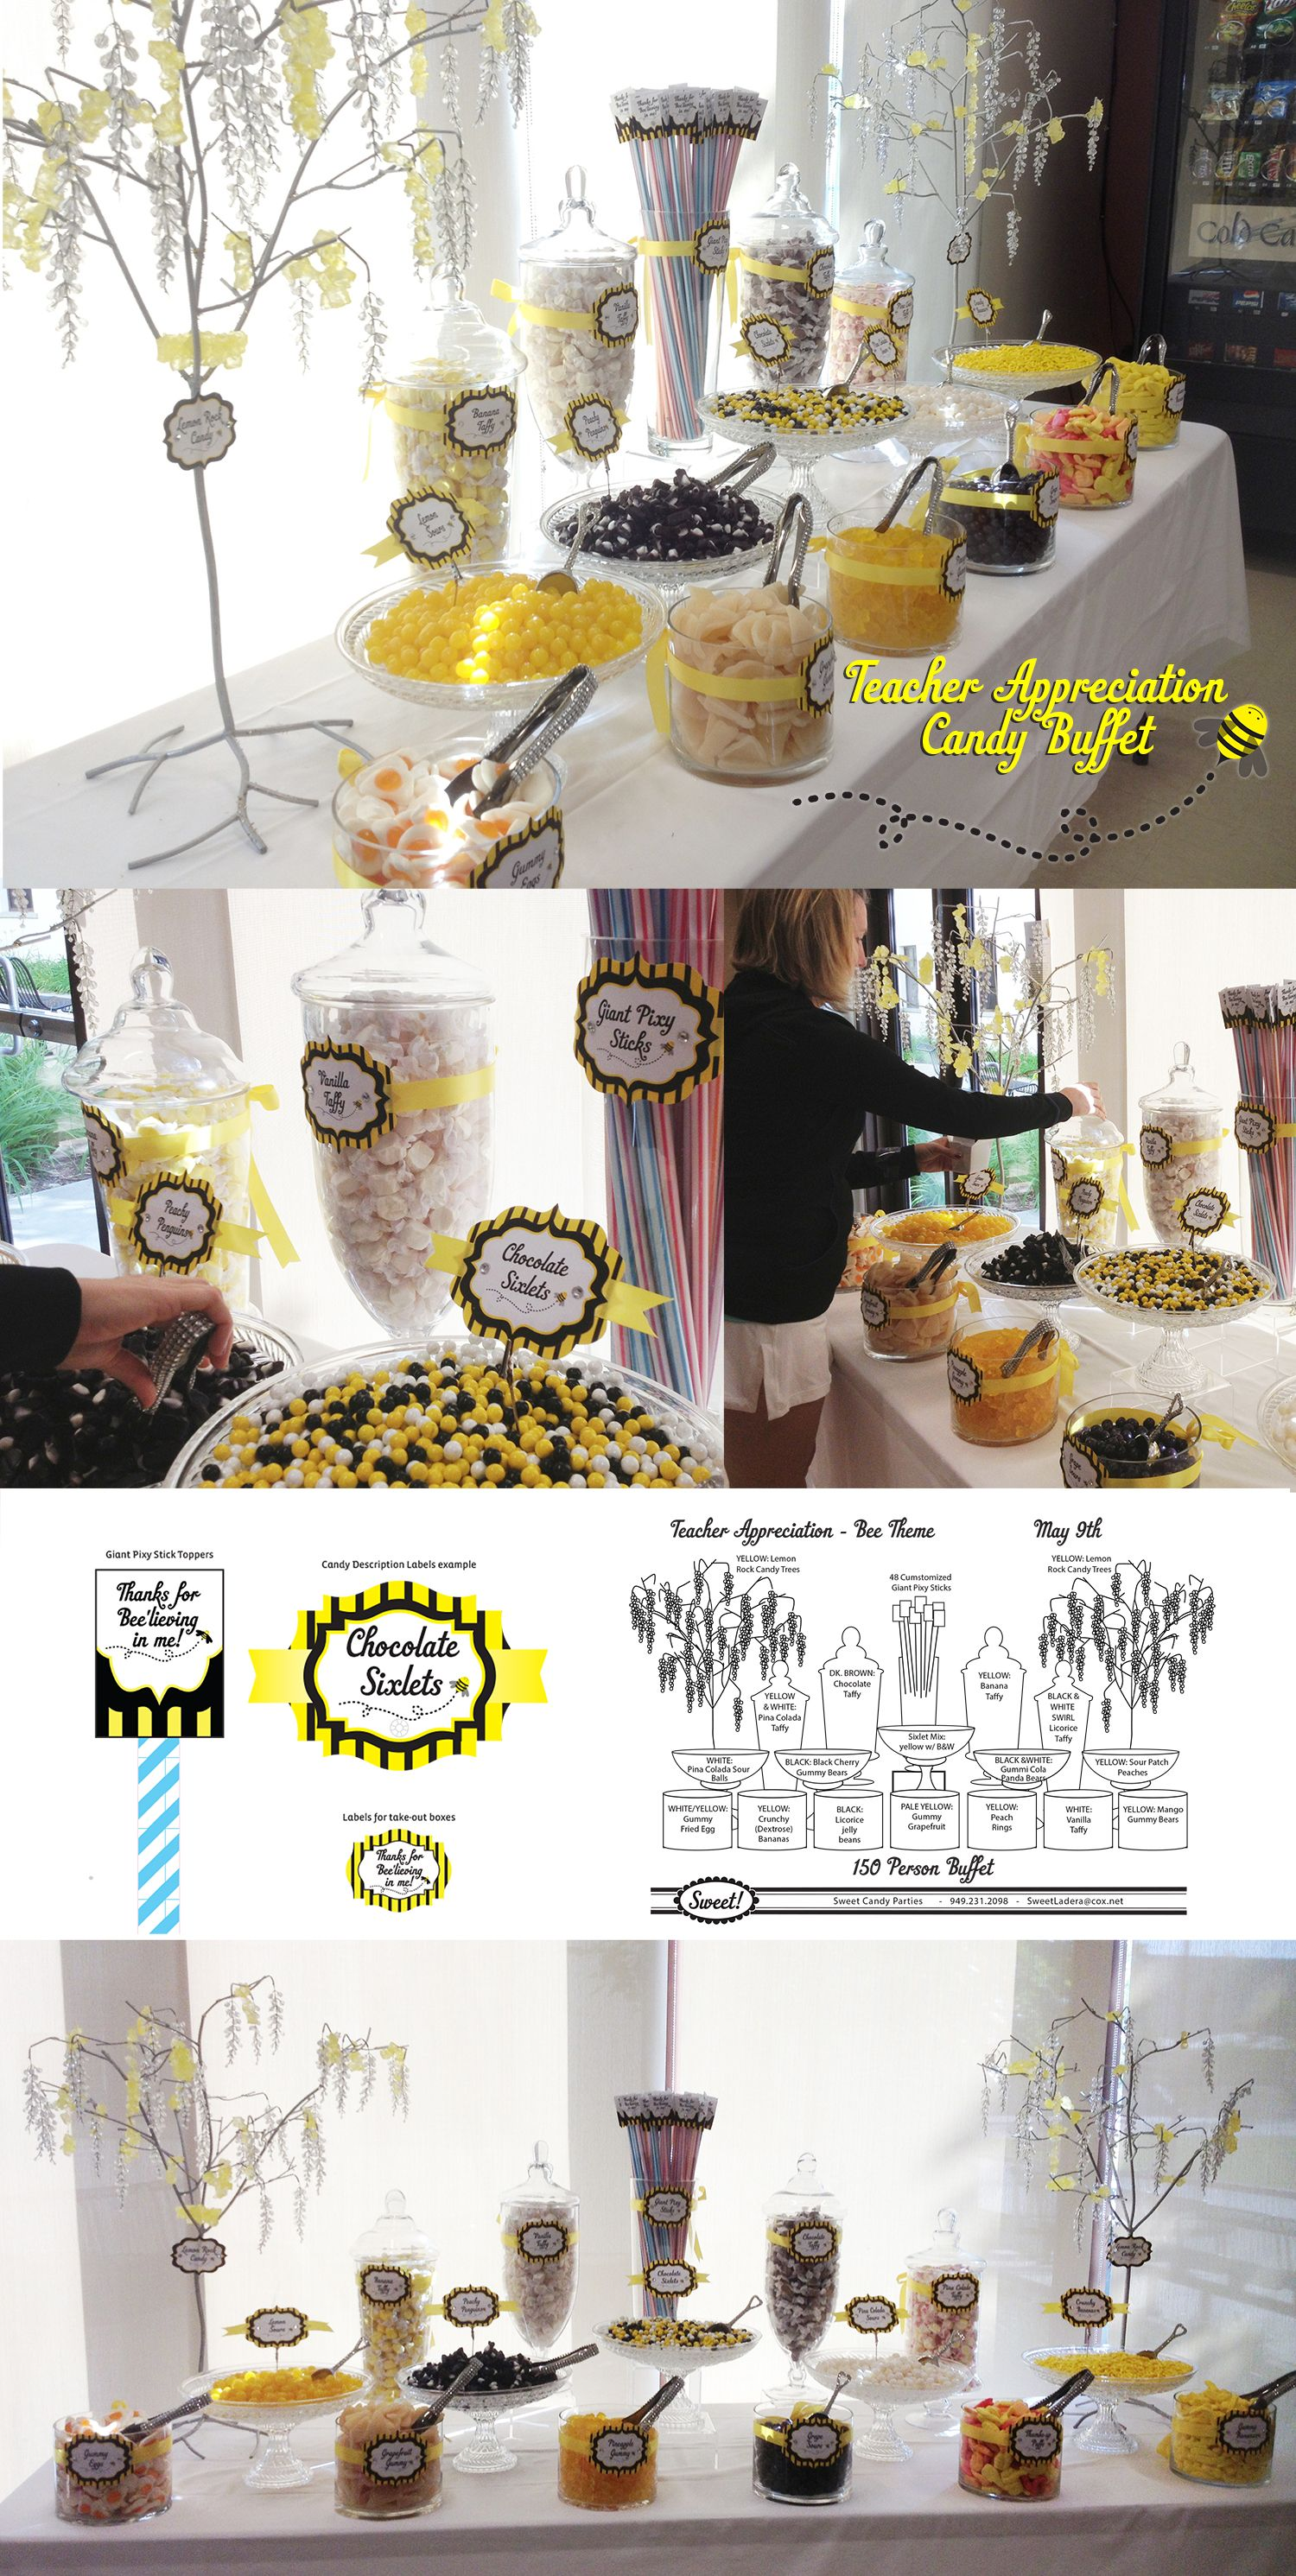 Teacher Appreciation Candy Buffet  Bee Theme Thanks For Bee Lieving